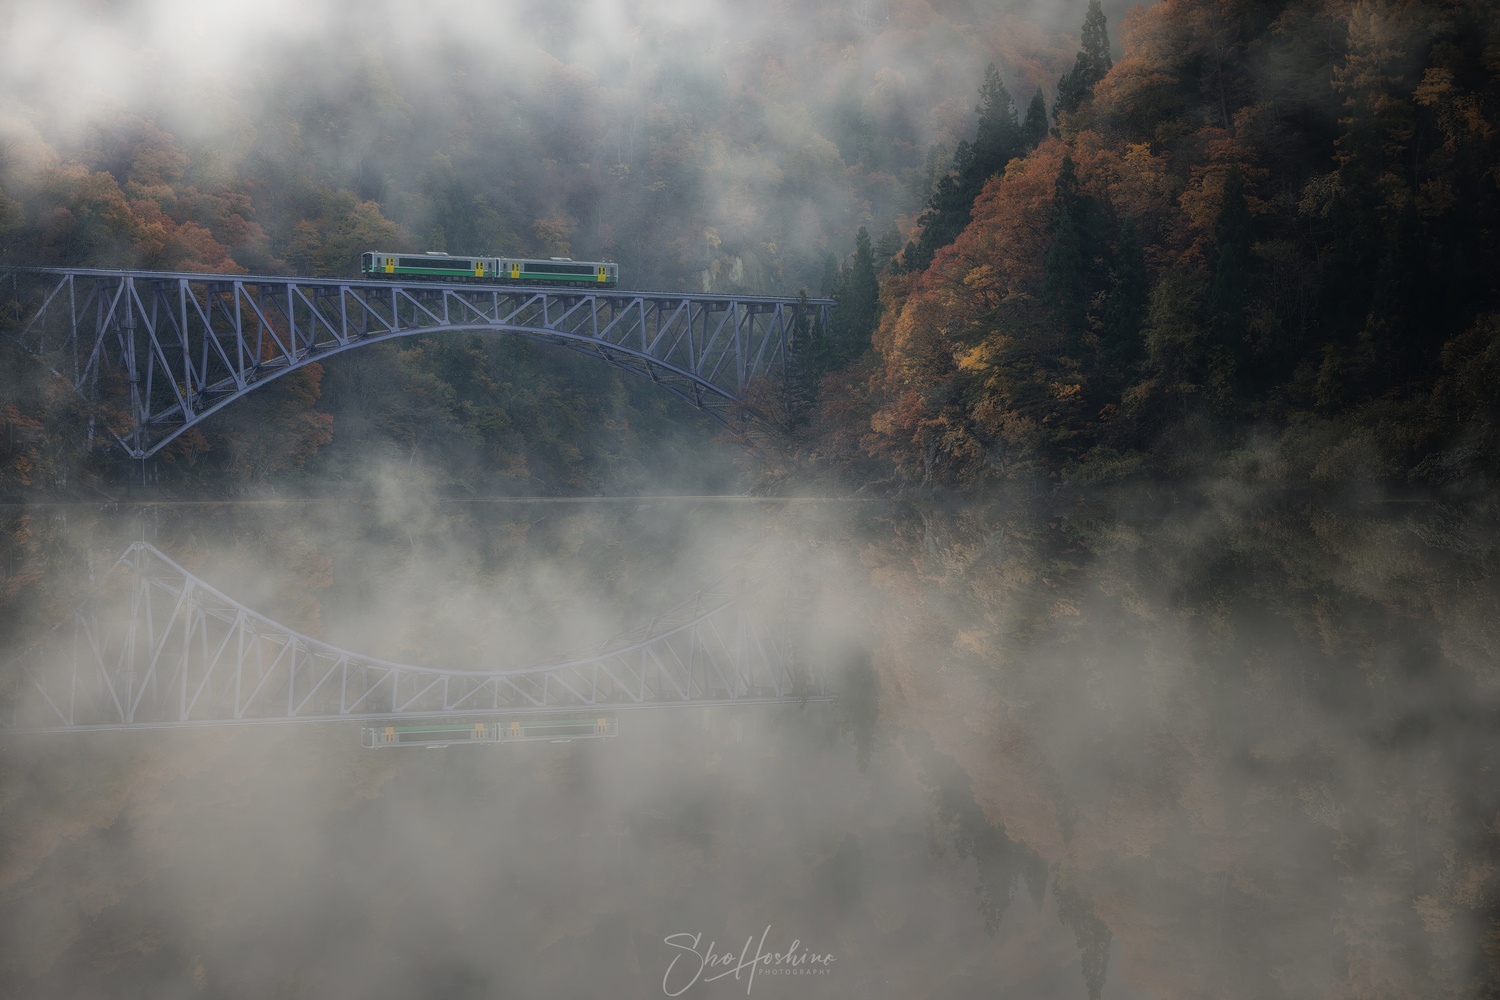 Train running in the river fog by Sho Hoshino